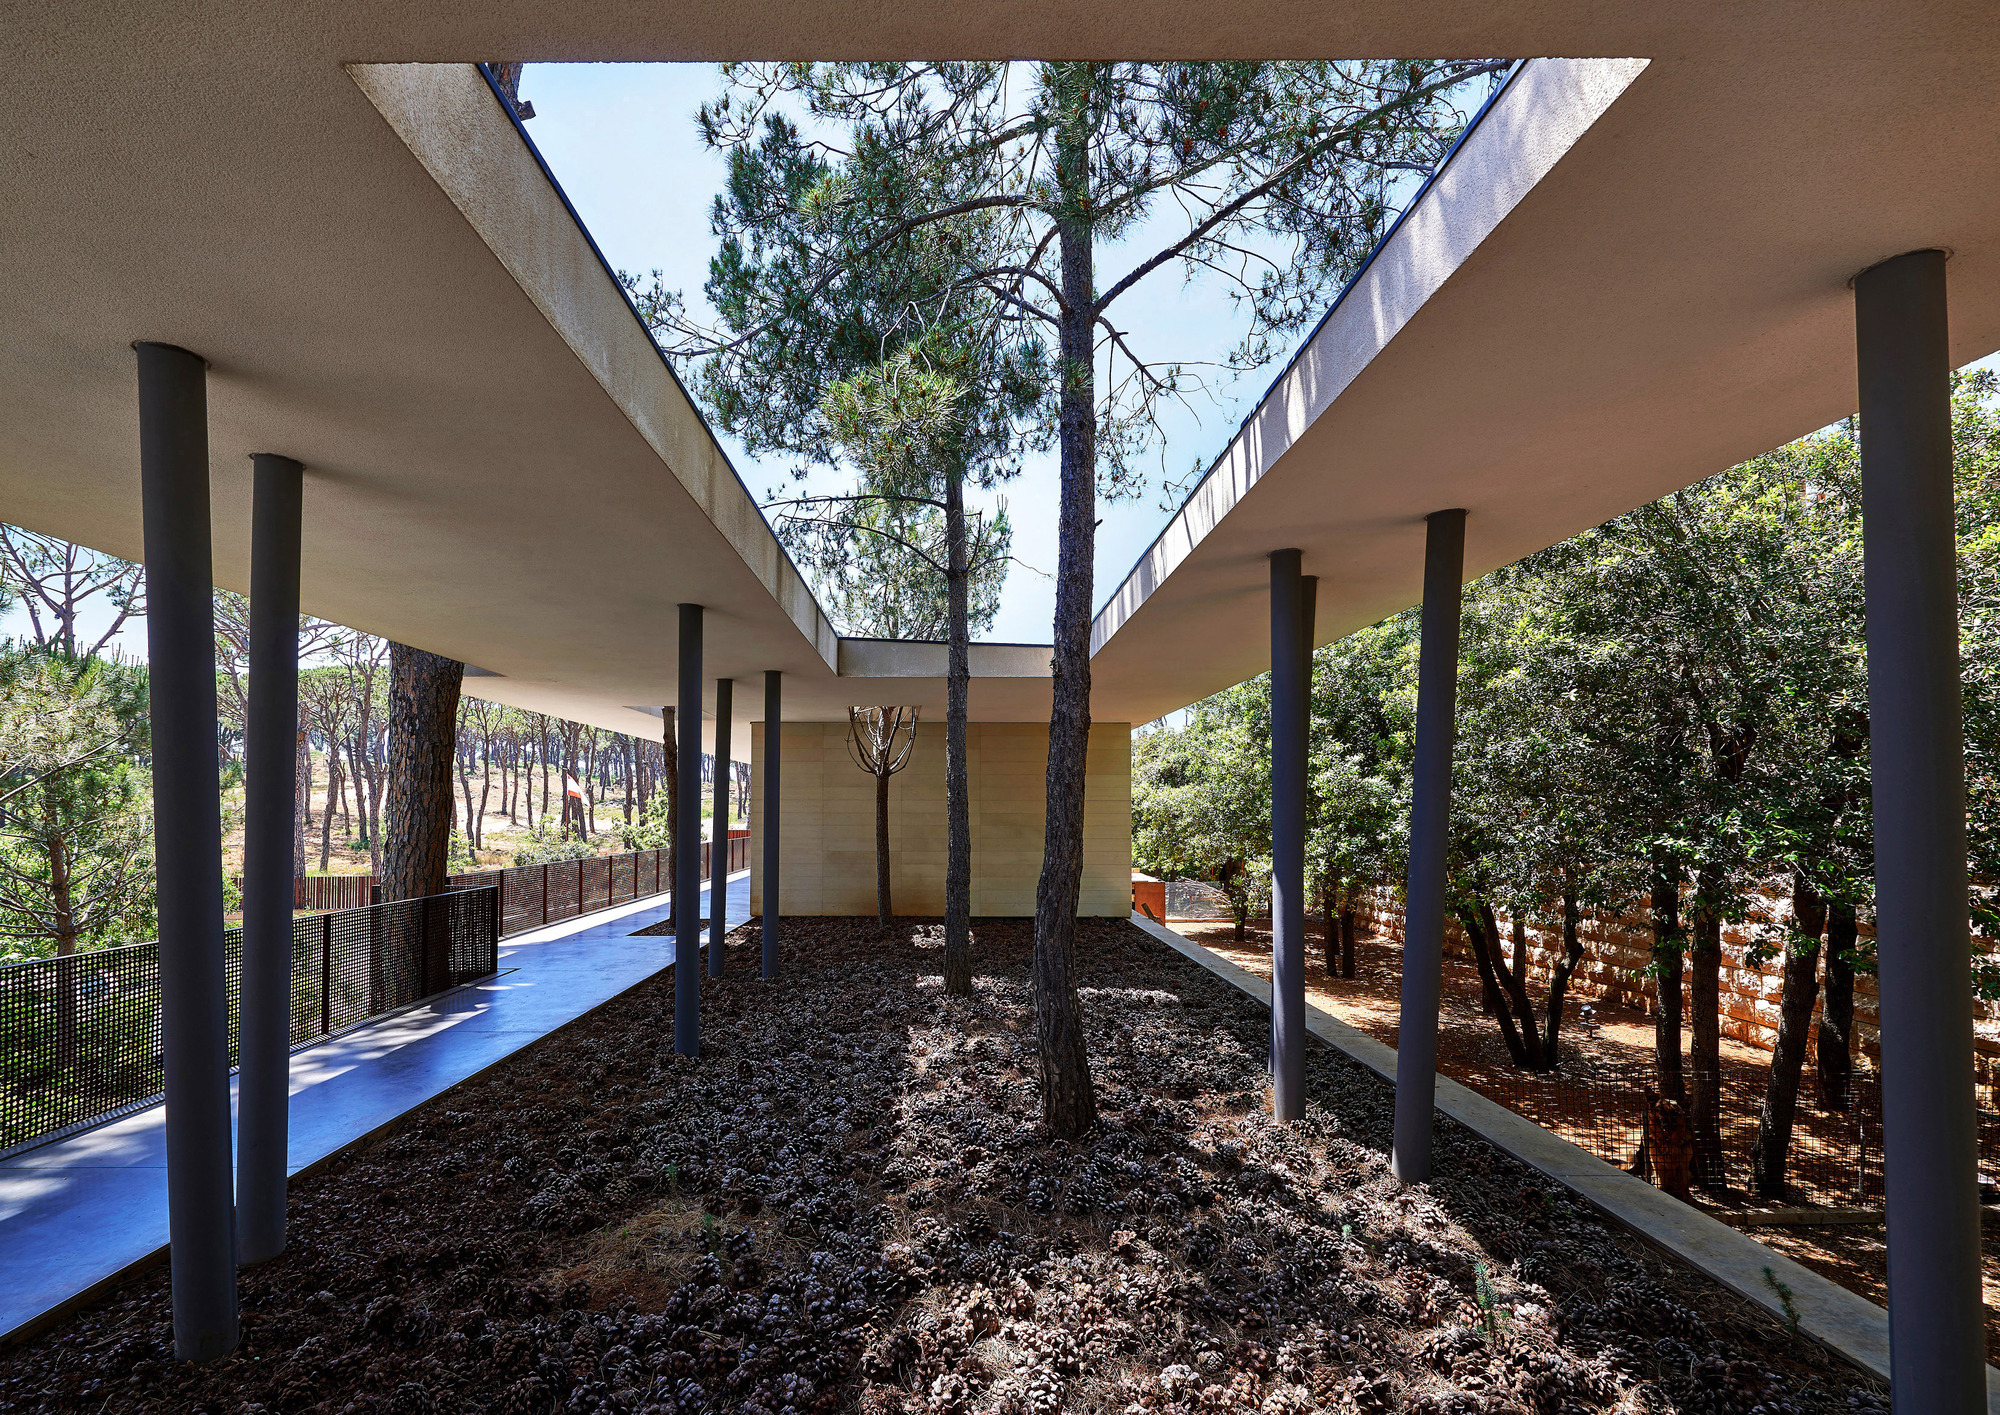 The House with Two Lives / nabil gholam architects